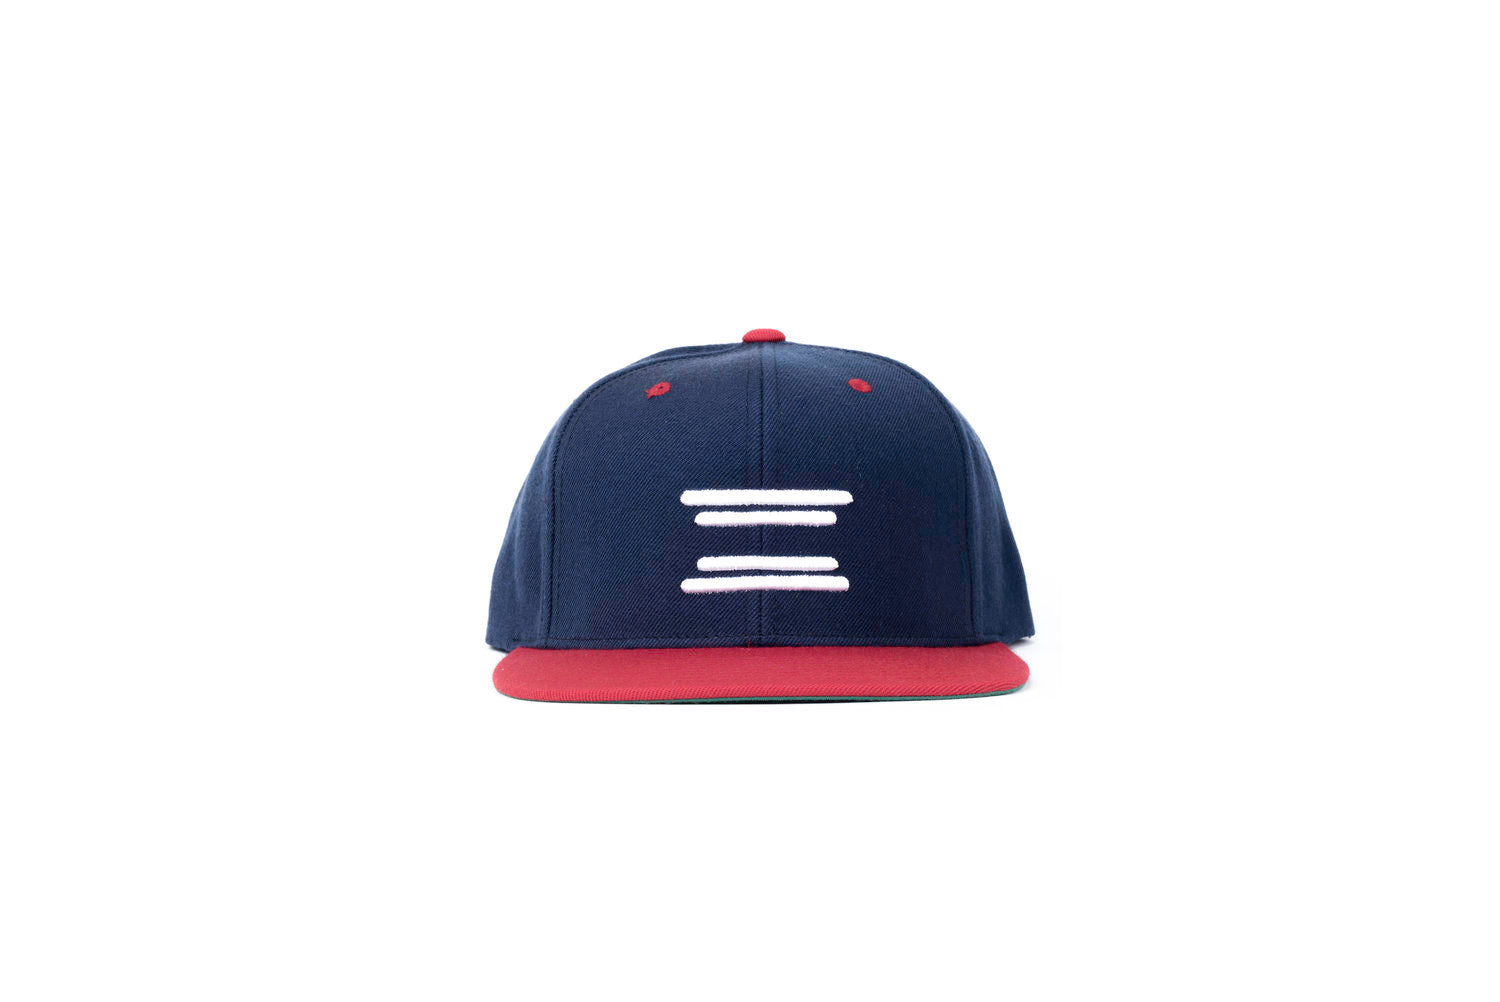 Bars Snapback (Navy/Red)